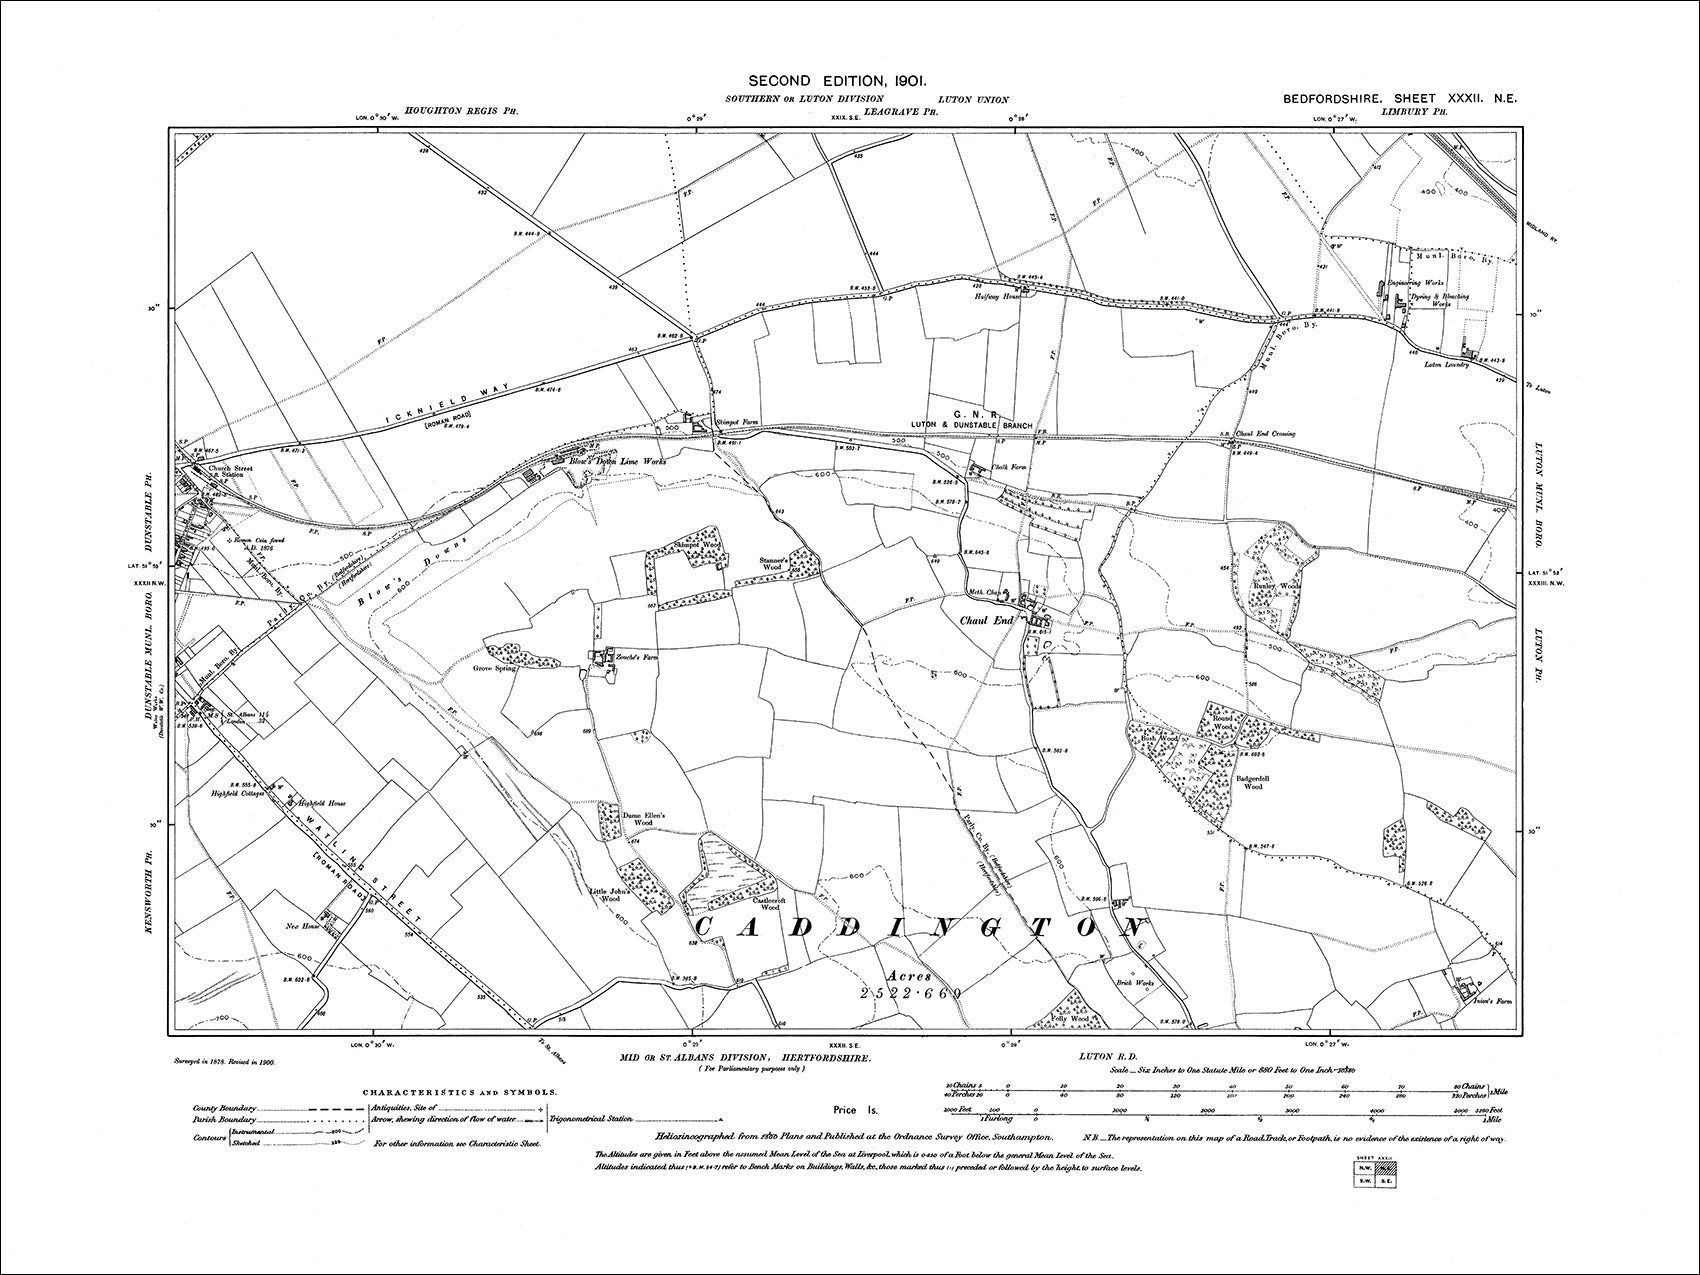 Dunstable E Blows Down old map Bedfordshire 1901 32NE Old